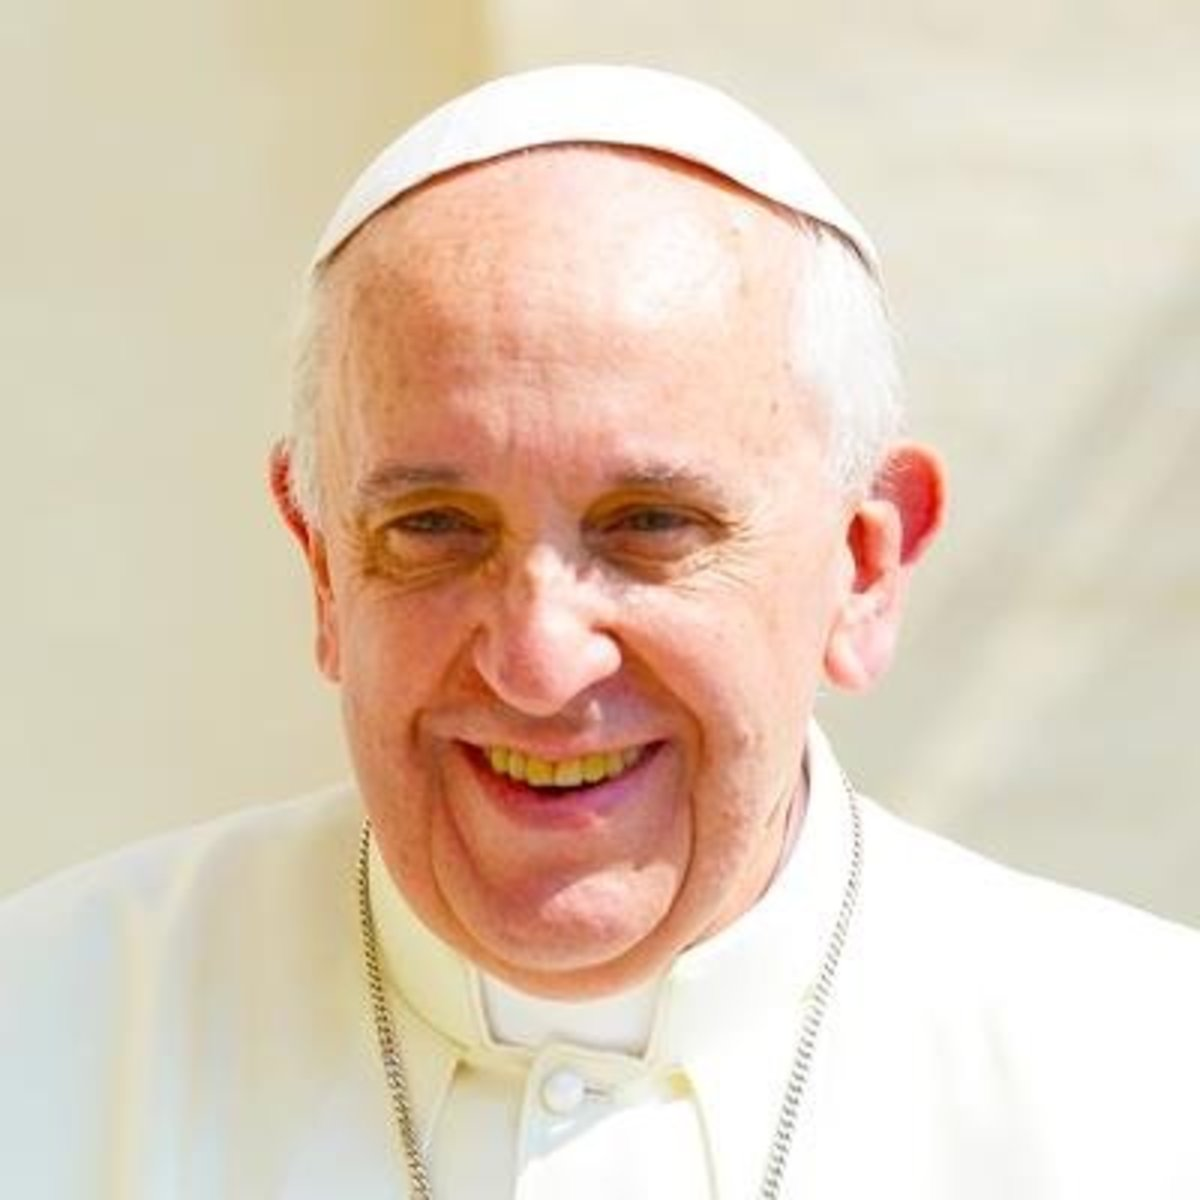 Pope Francis, the first Jesuit Pope.